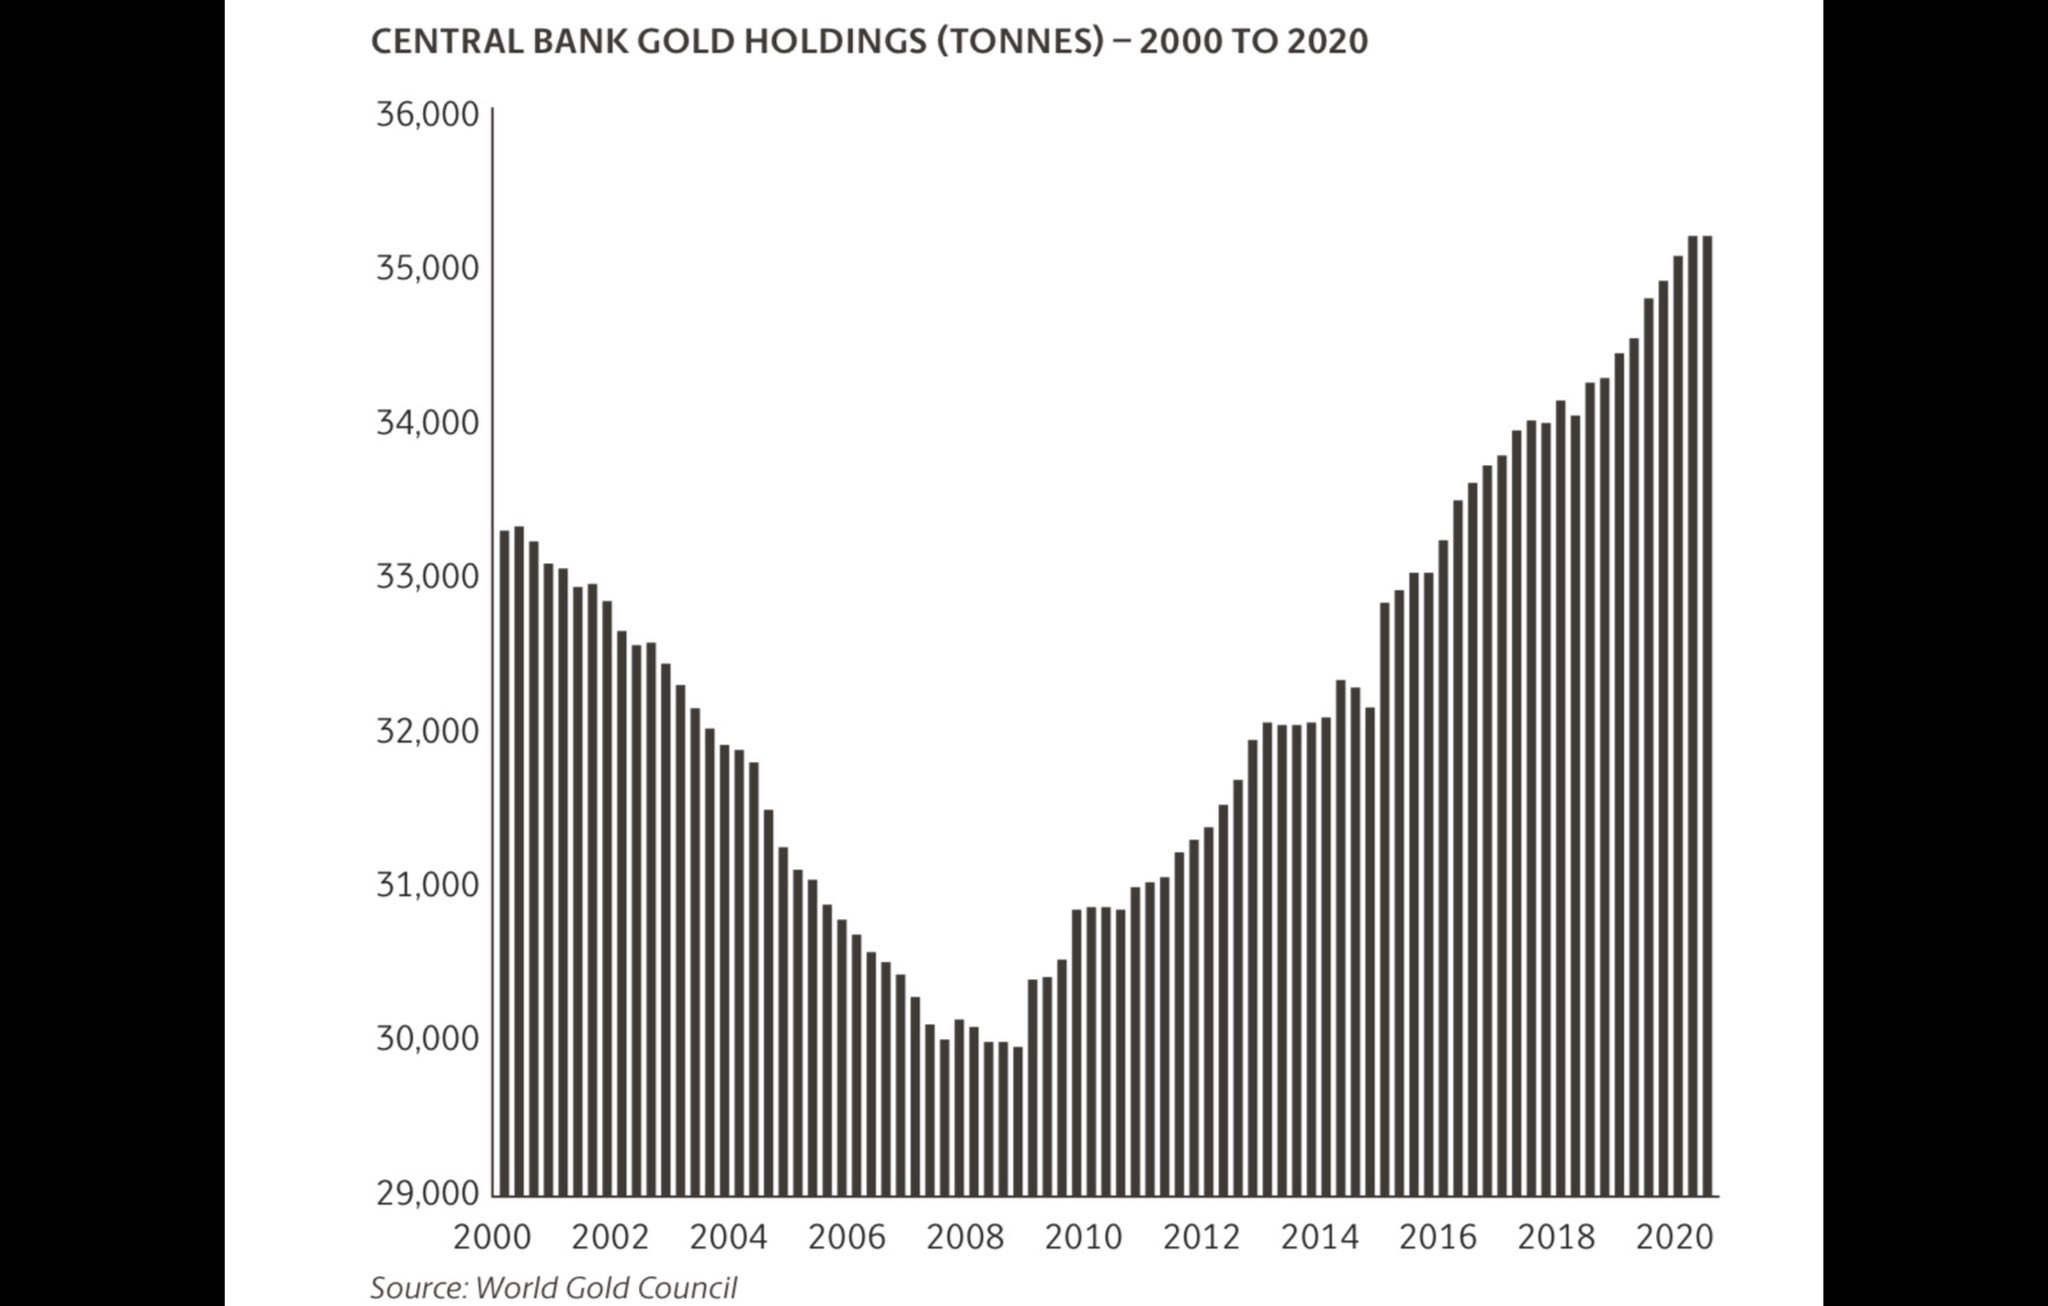 Central Banks Gold Holdings 2000-2020